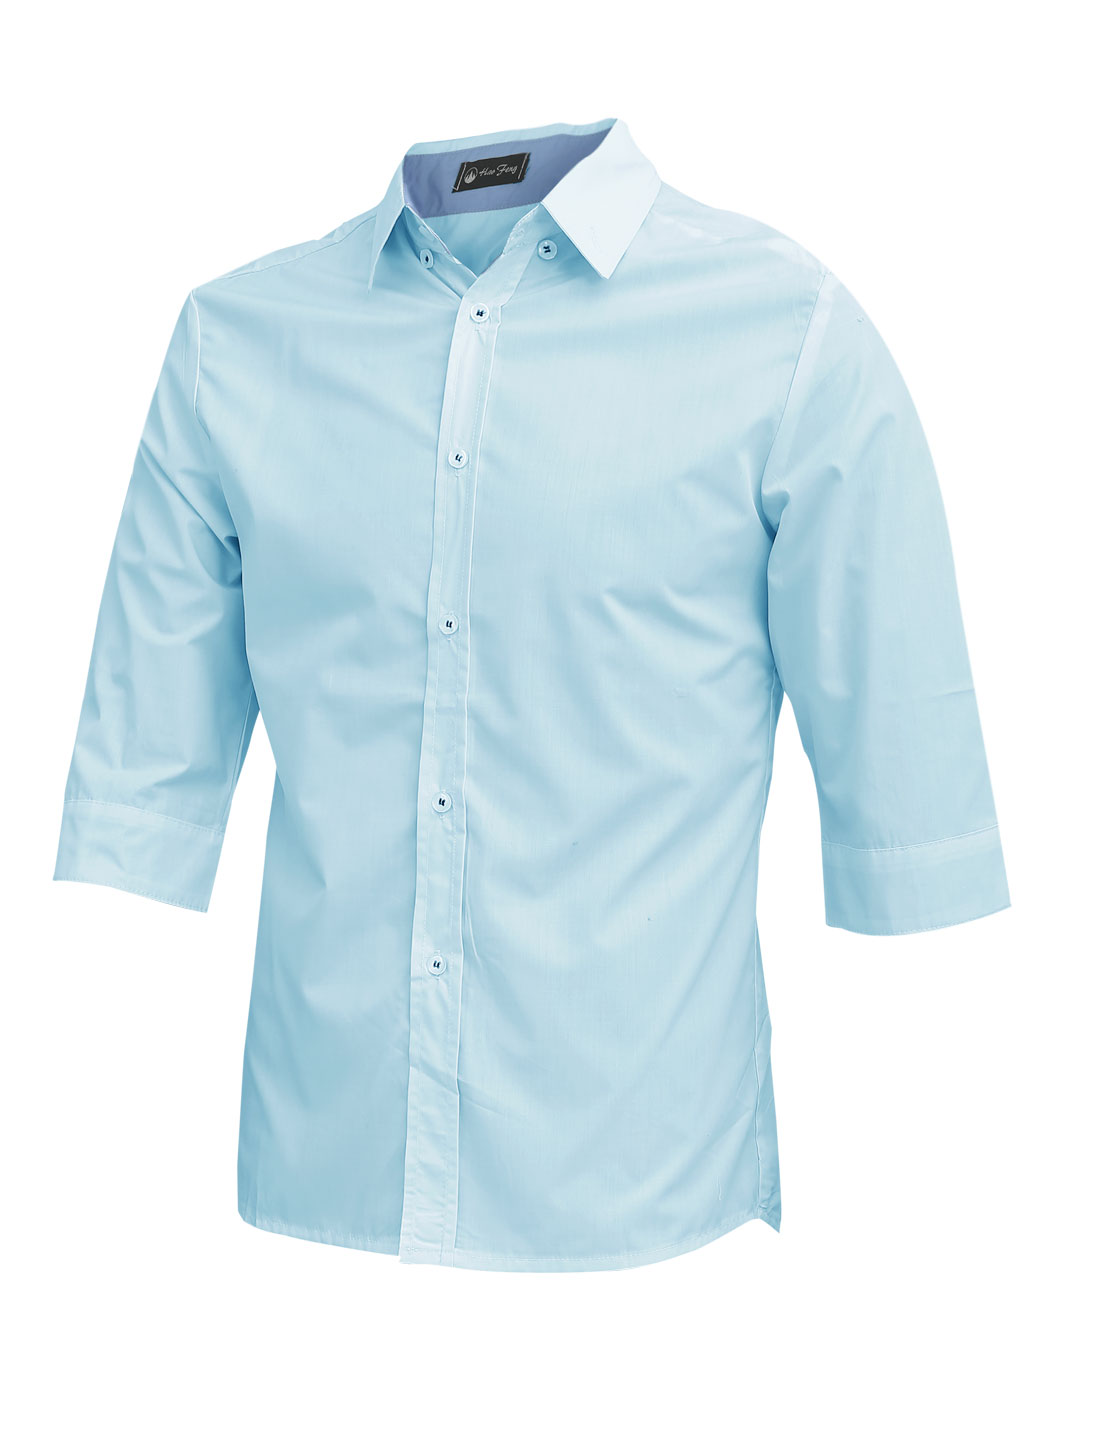 Men Point Collar Button Closure 3/4 Sleeve Casual Shirt Sky Blue M